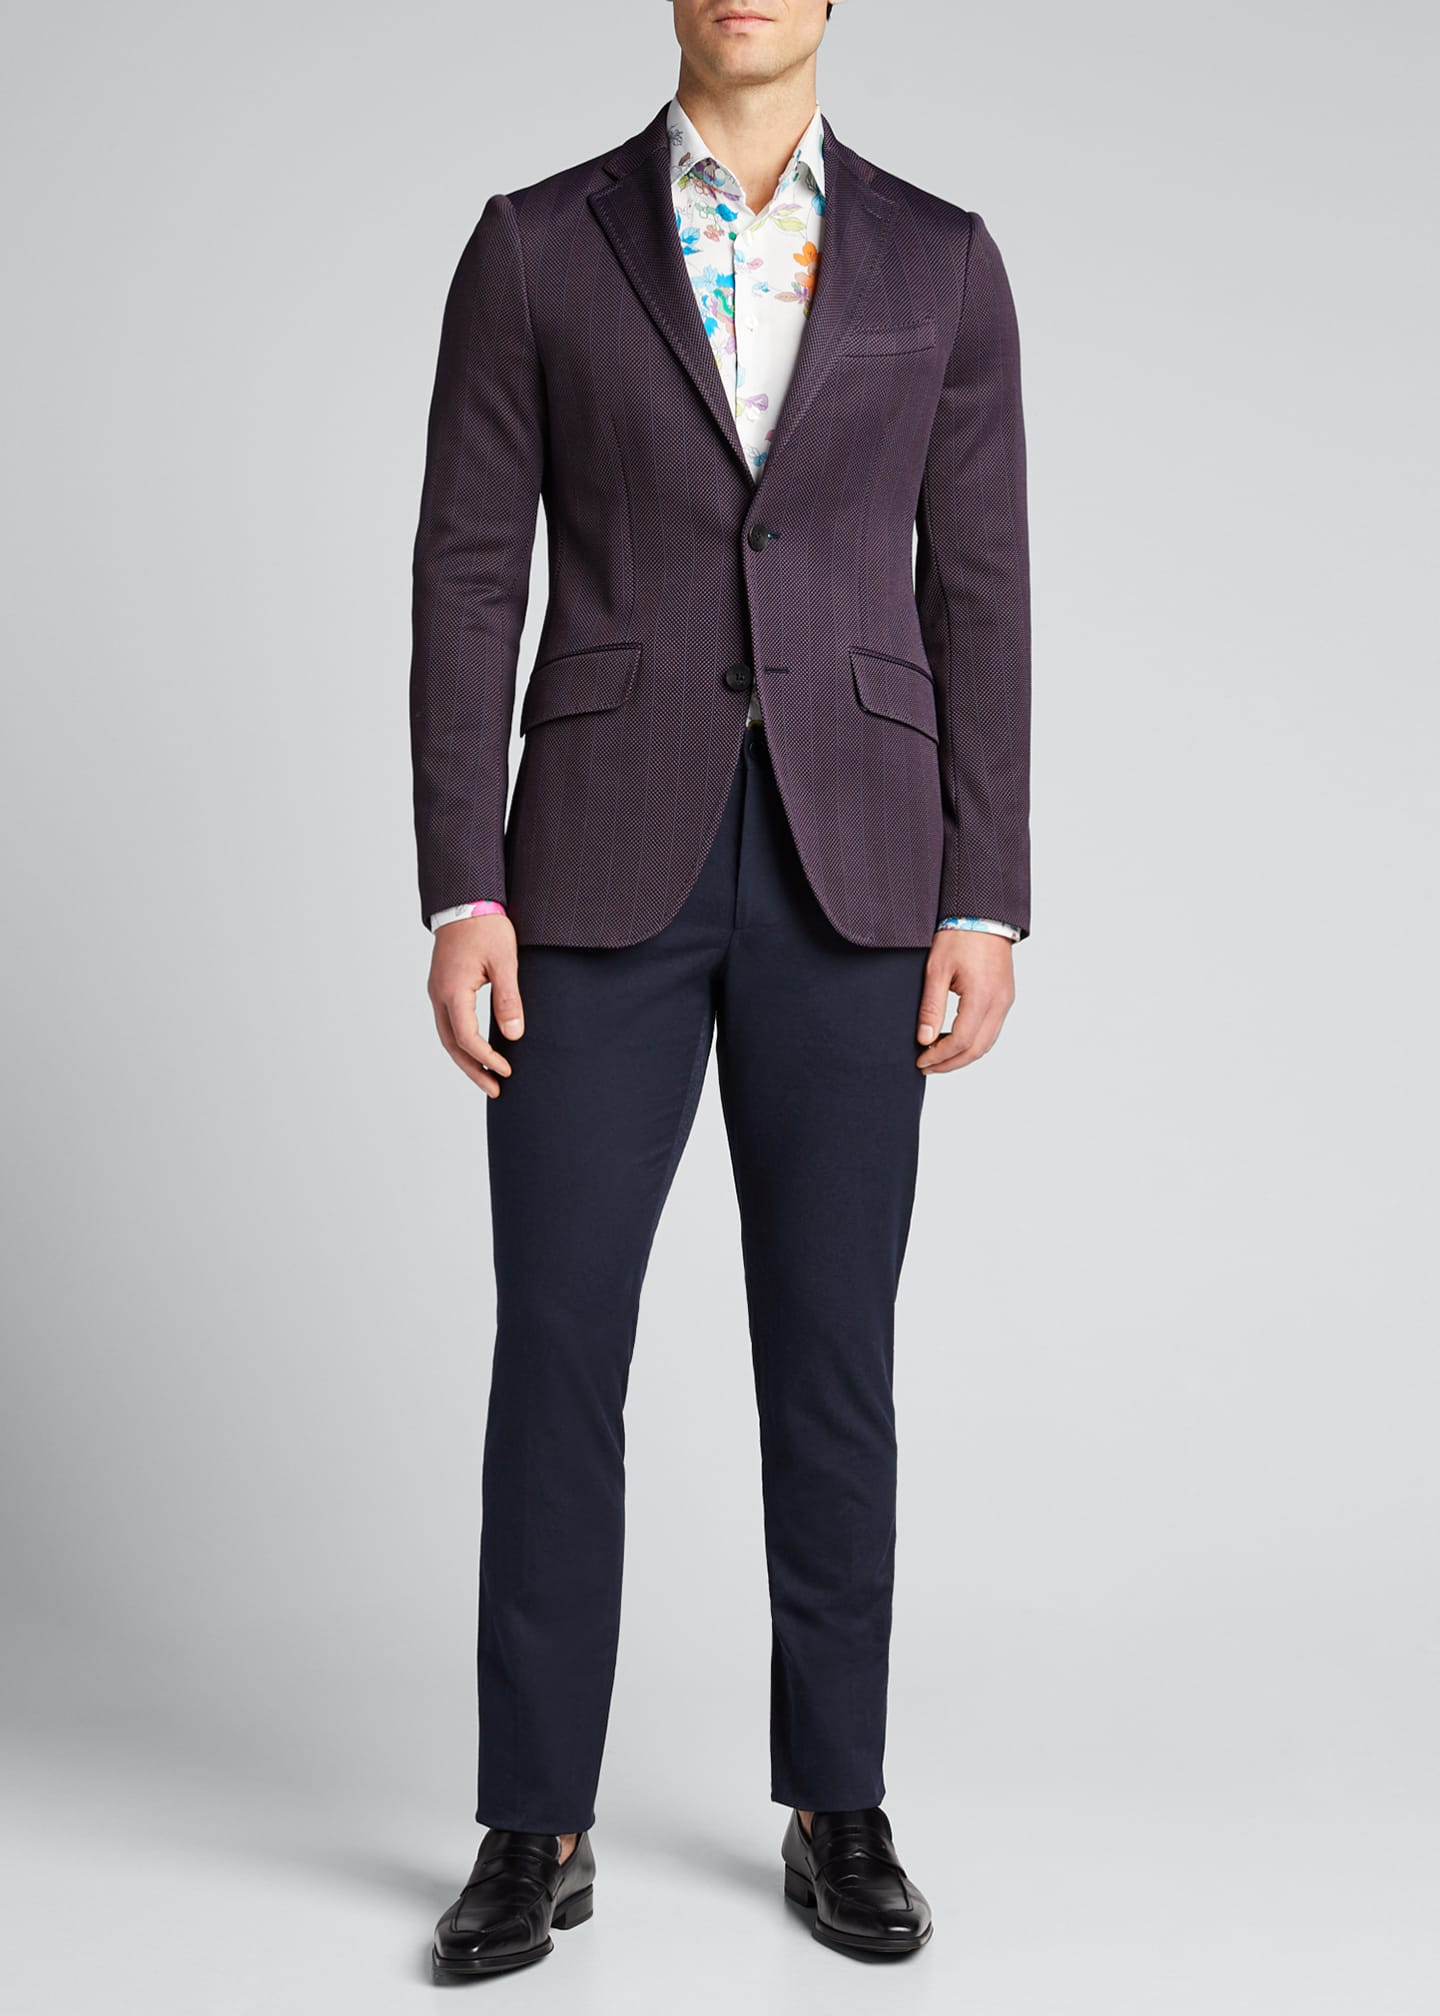 Etro Men's Paisley Solid-Knit Trousers